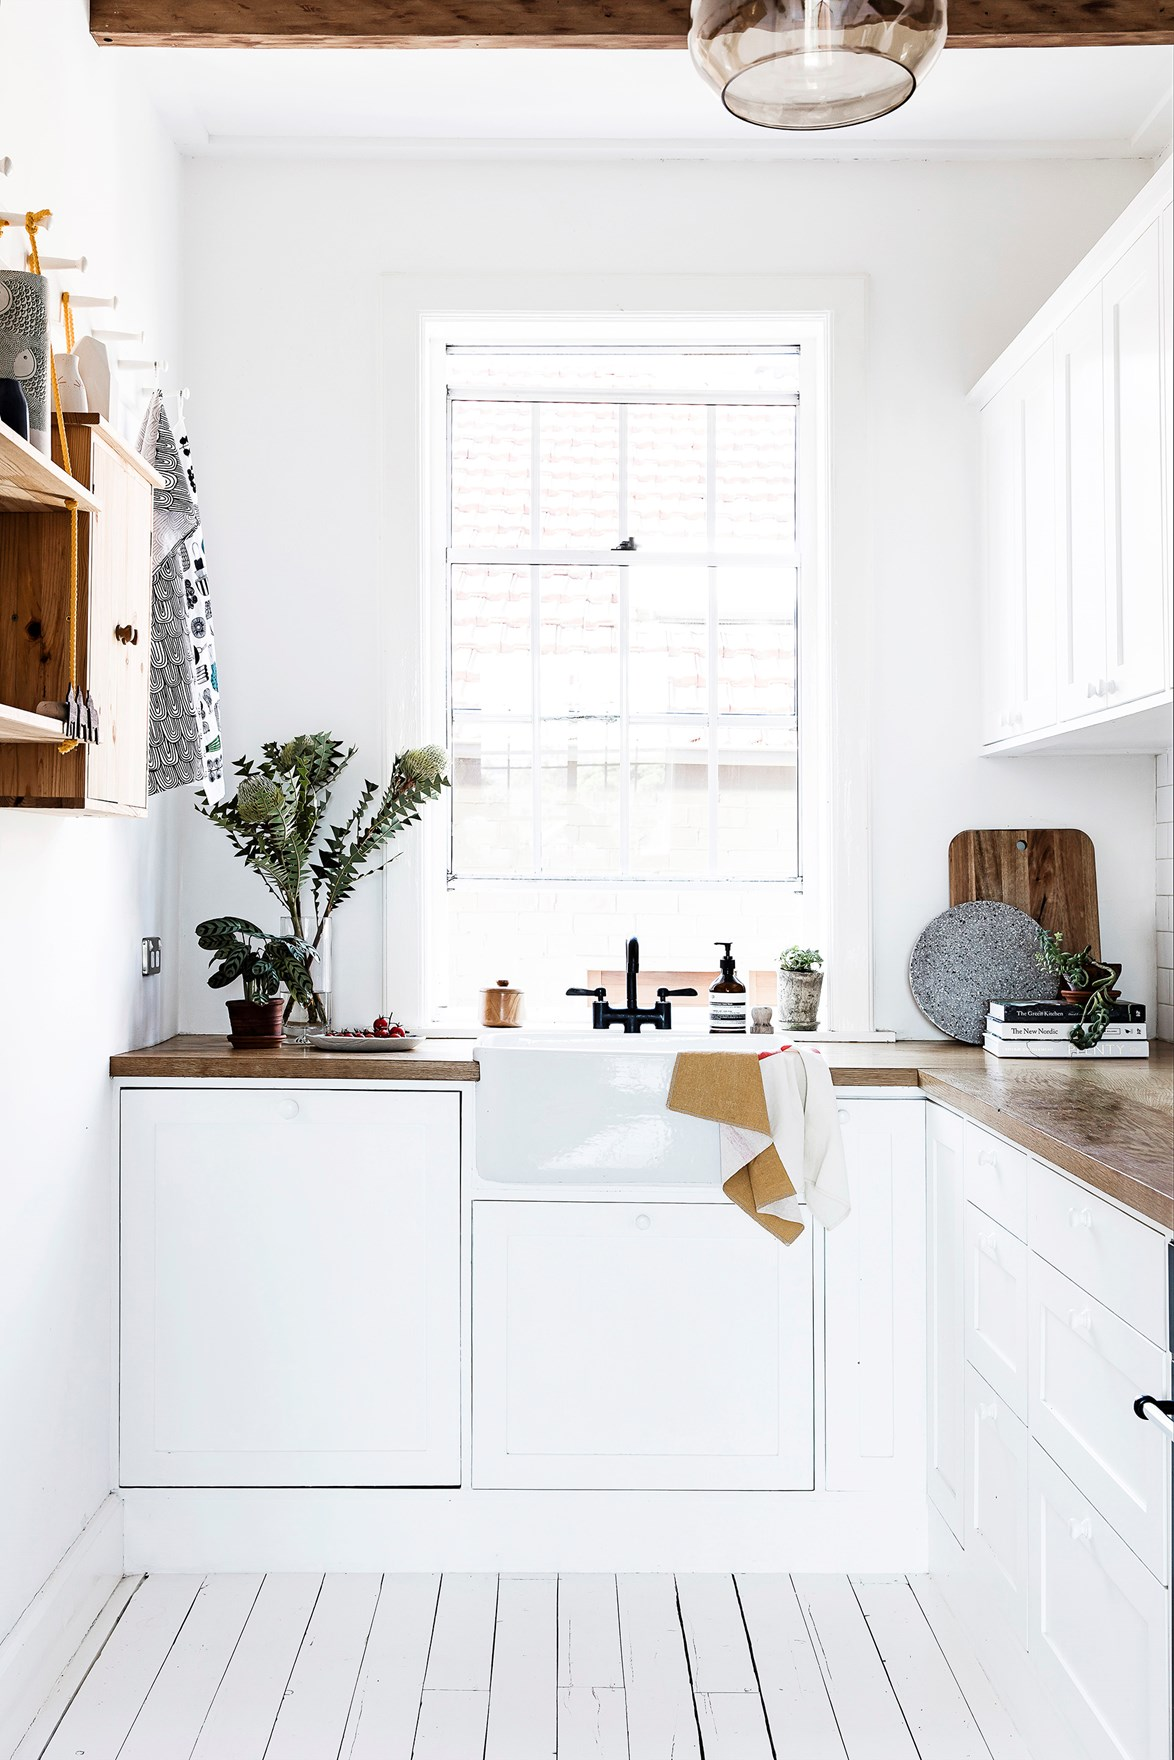 White paint will also boost the brightening effect of natural light, helping to make a small kitchen feel much larger than it is.